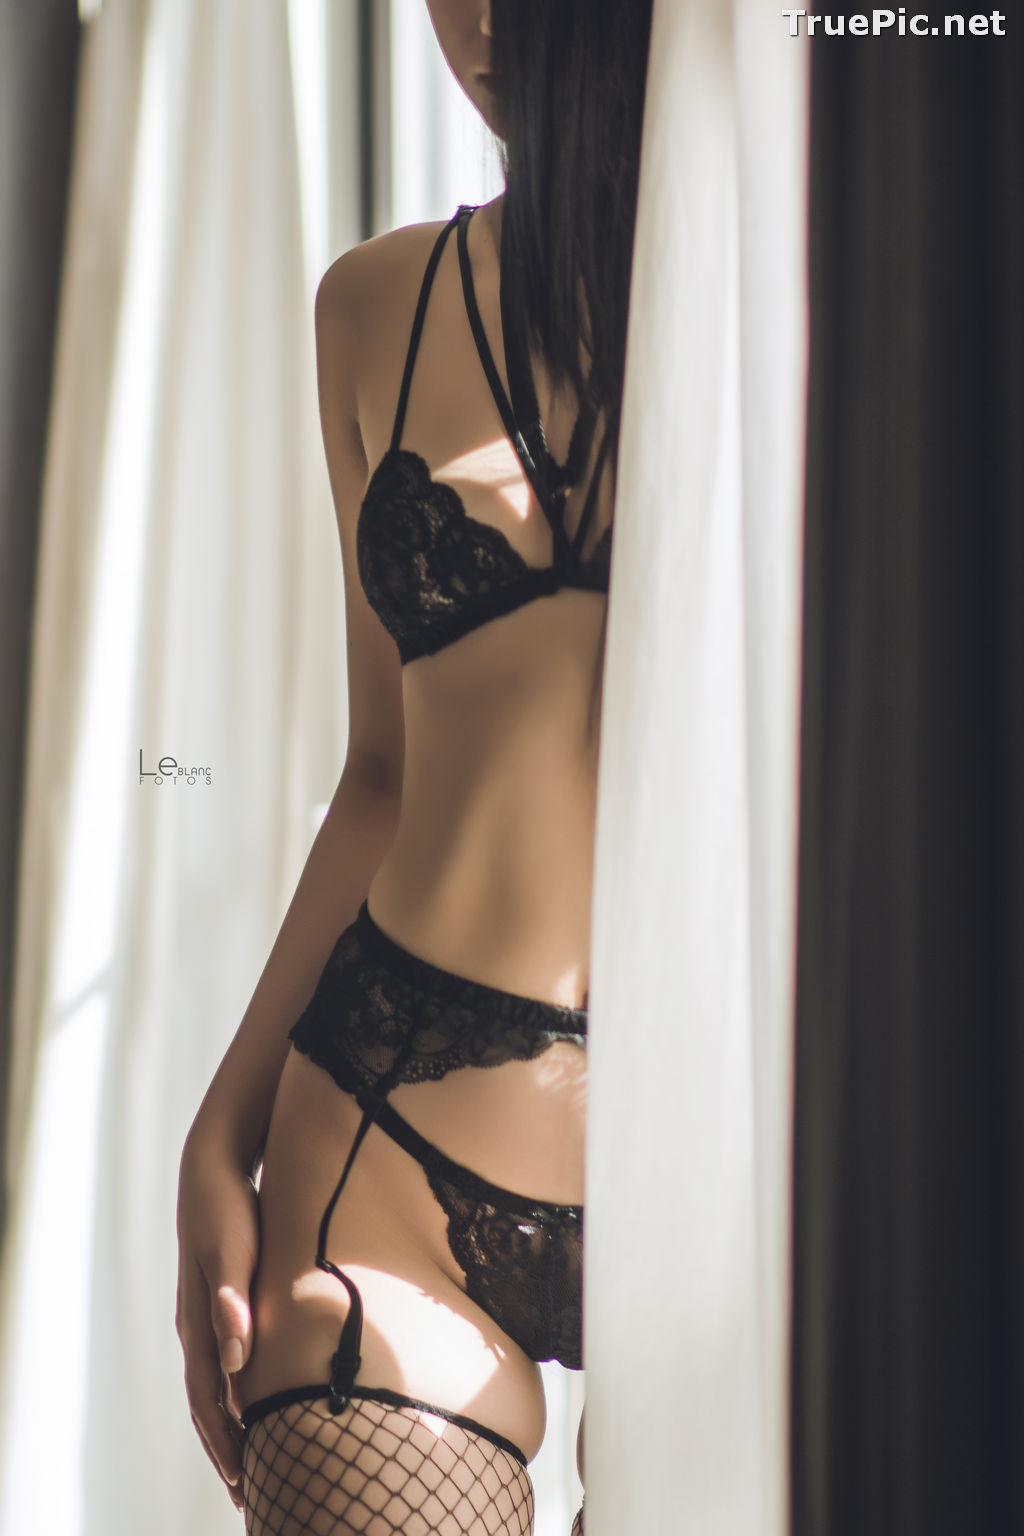 Image Vietnamese Beauties With Lingerie and Bikini – Photo by Le Blanc Studio #13 - TruePic.net - Picture-8